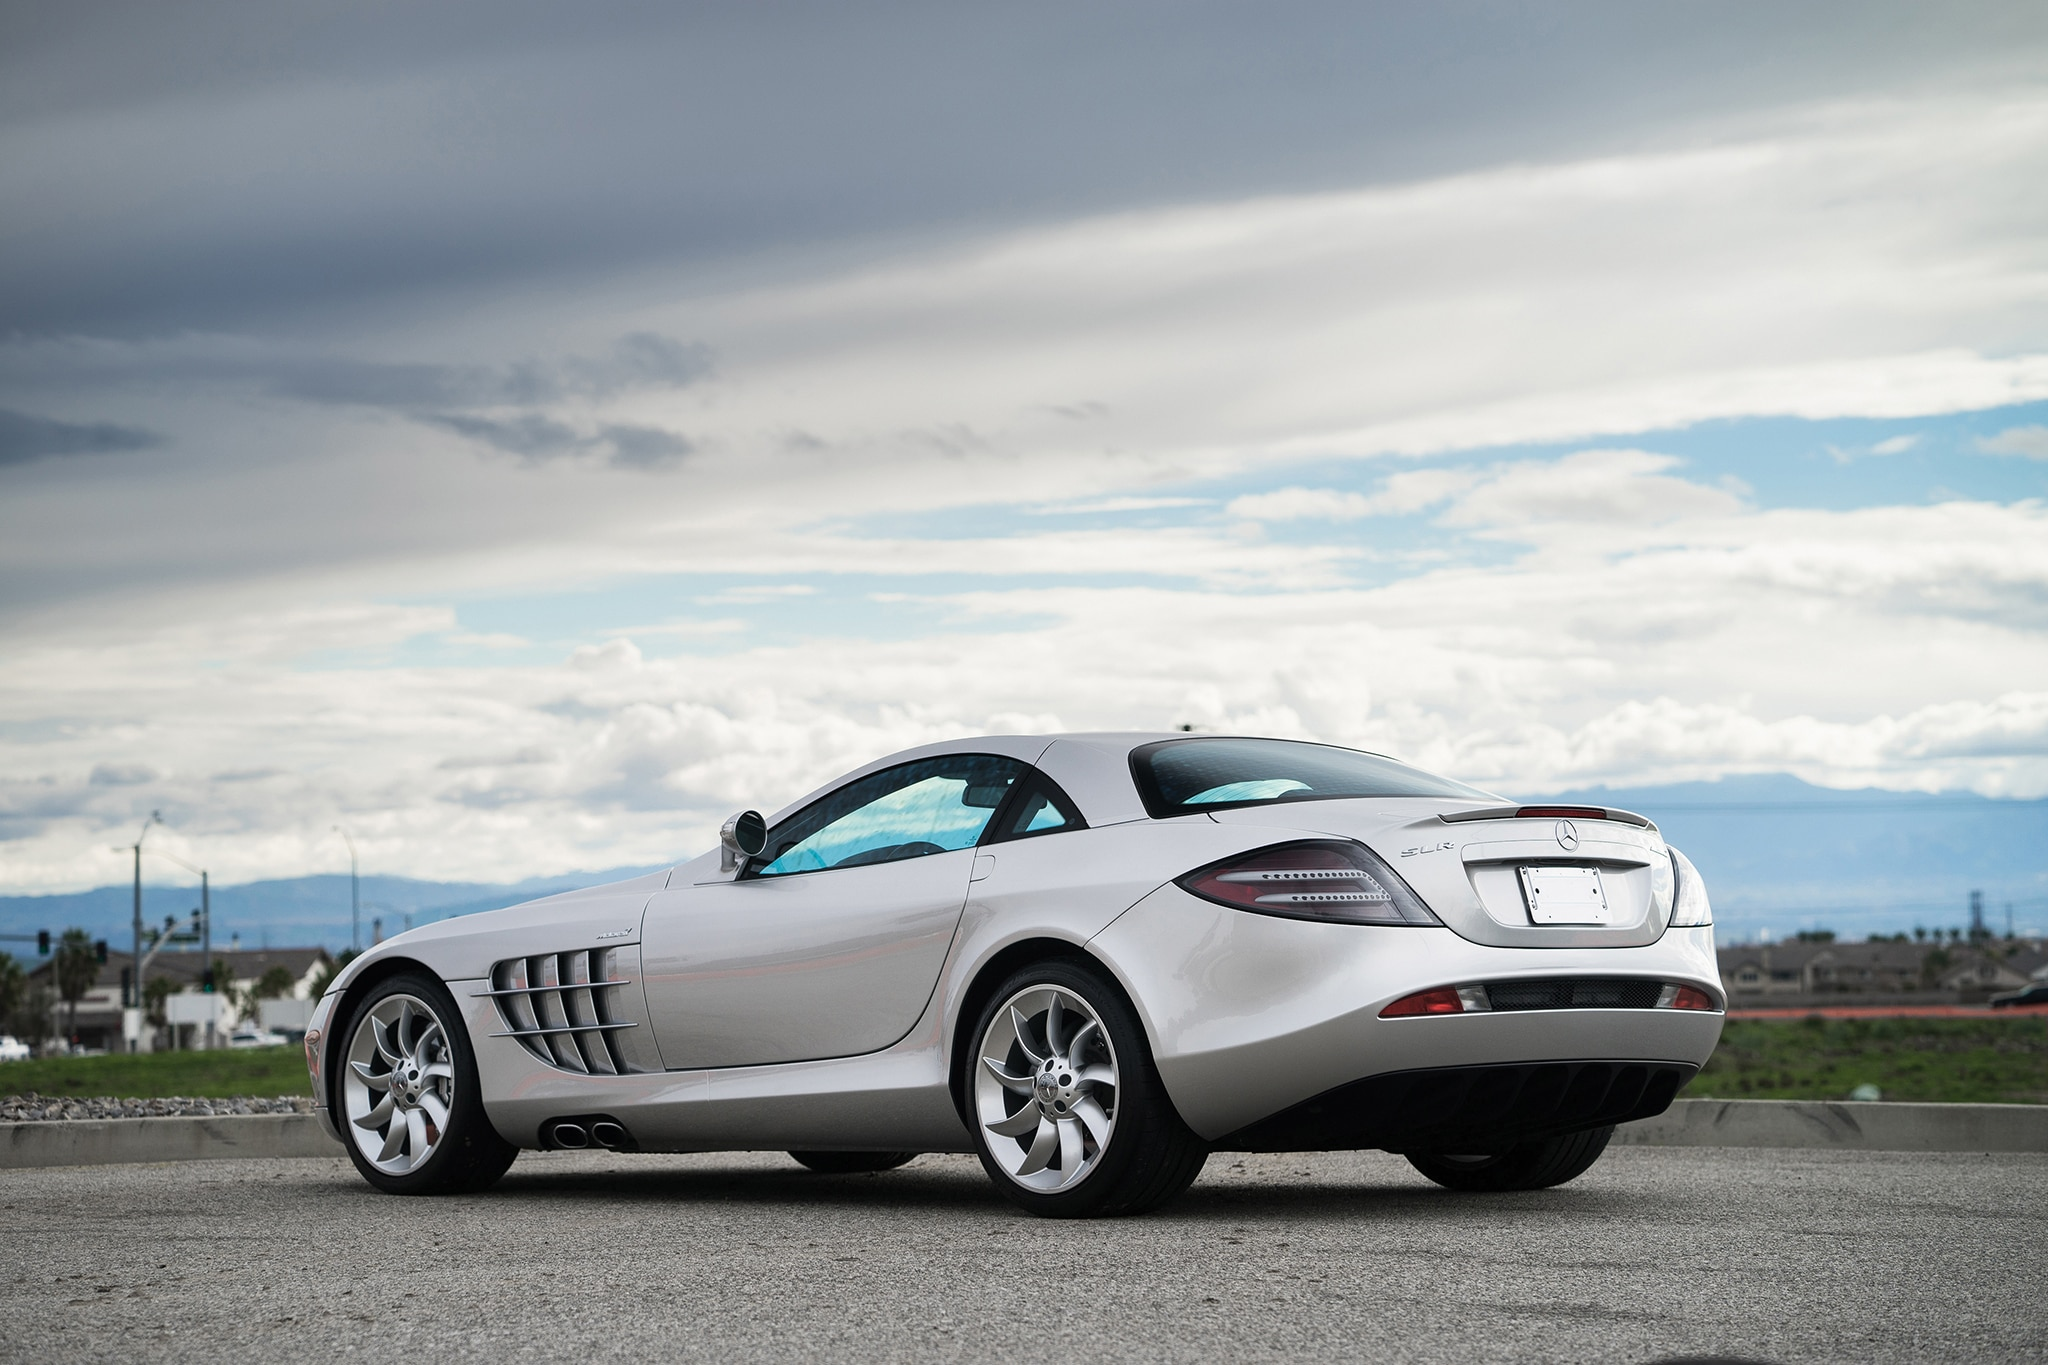 Mclaren For Sale >> Just Listed: 2006 Mercedes-Benz SLR McLaren Coupe | Automobile Magazine